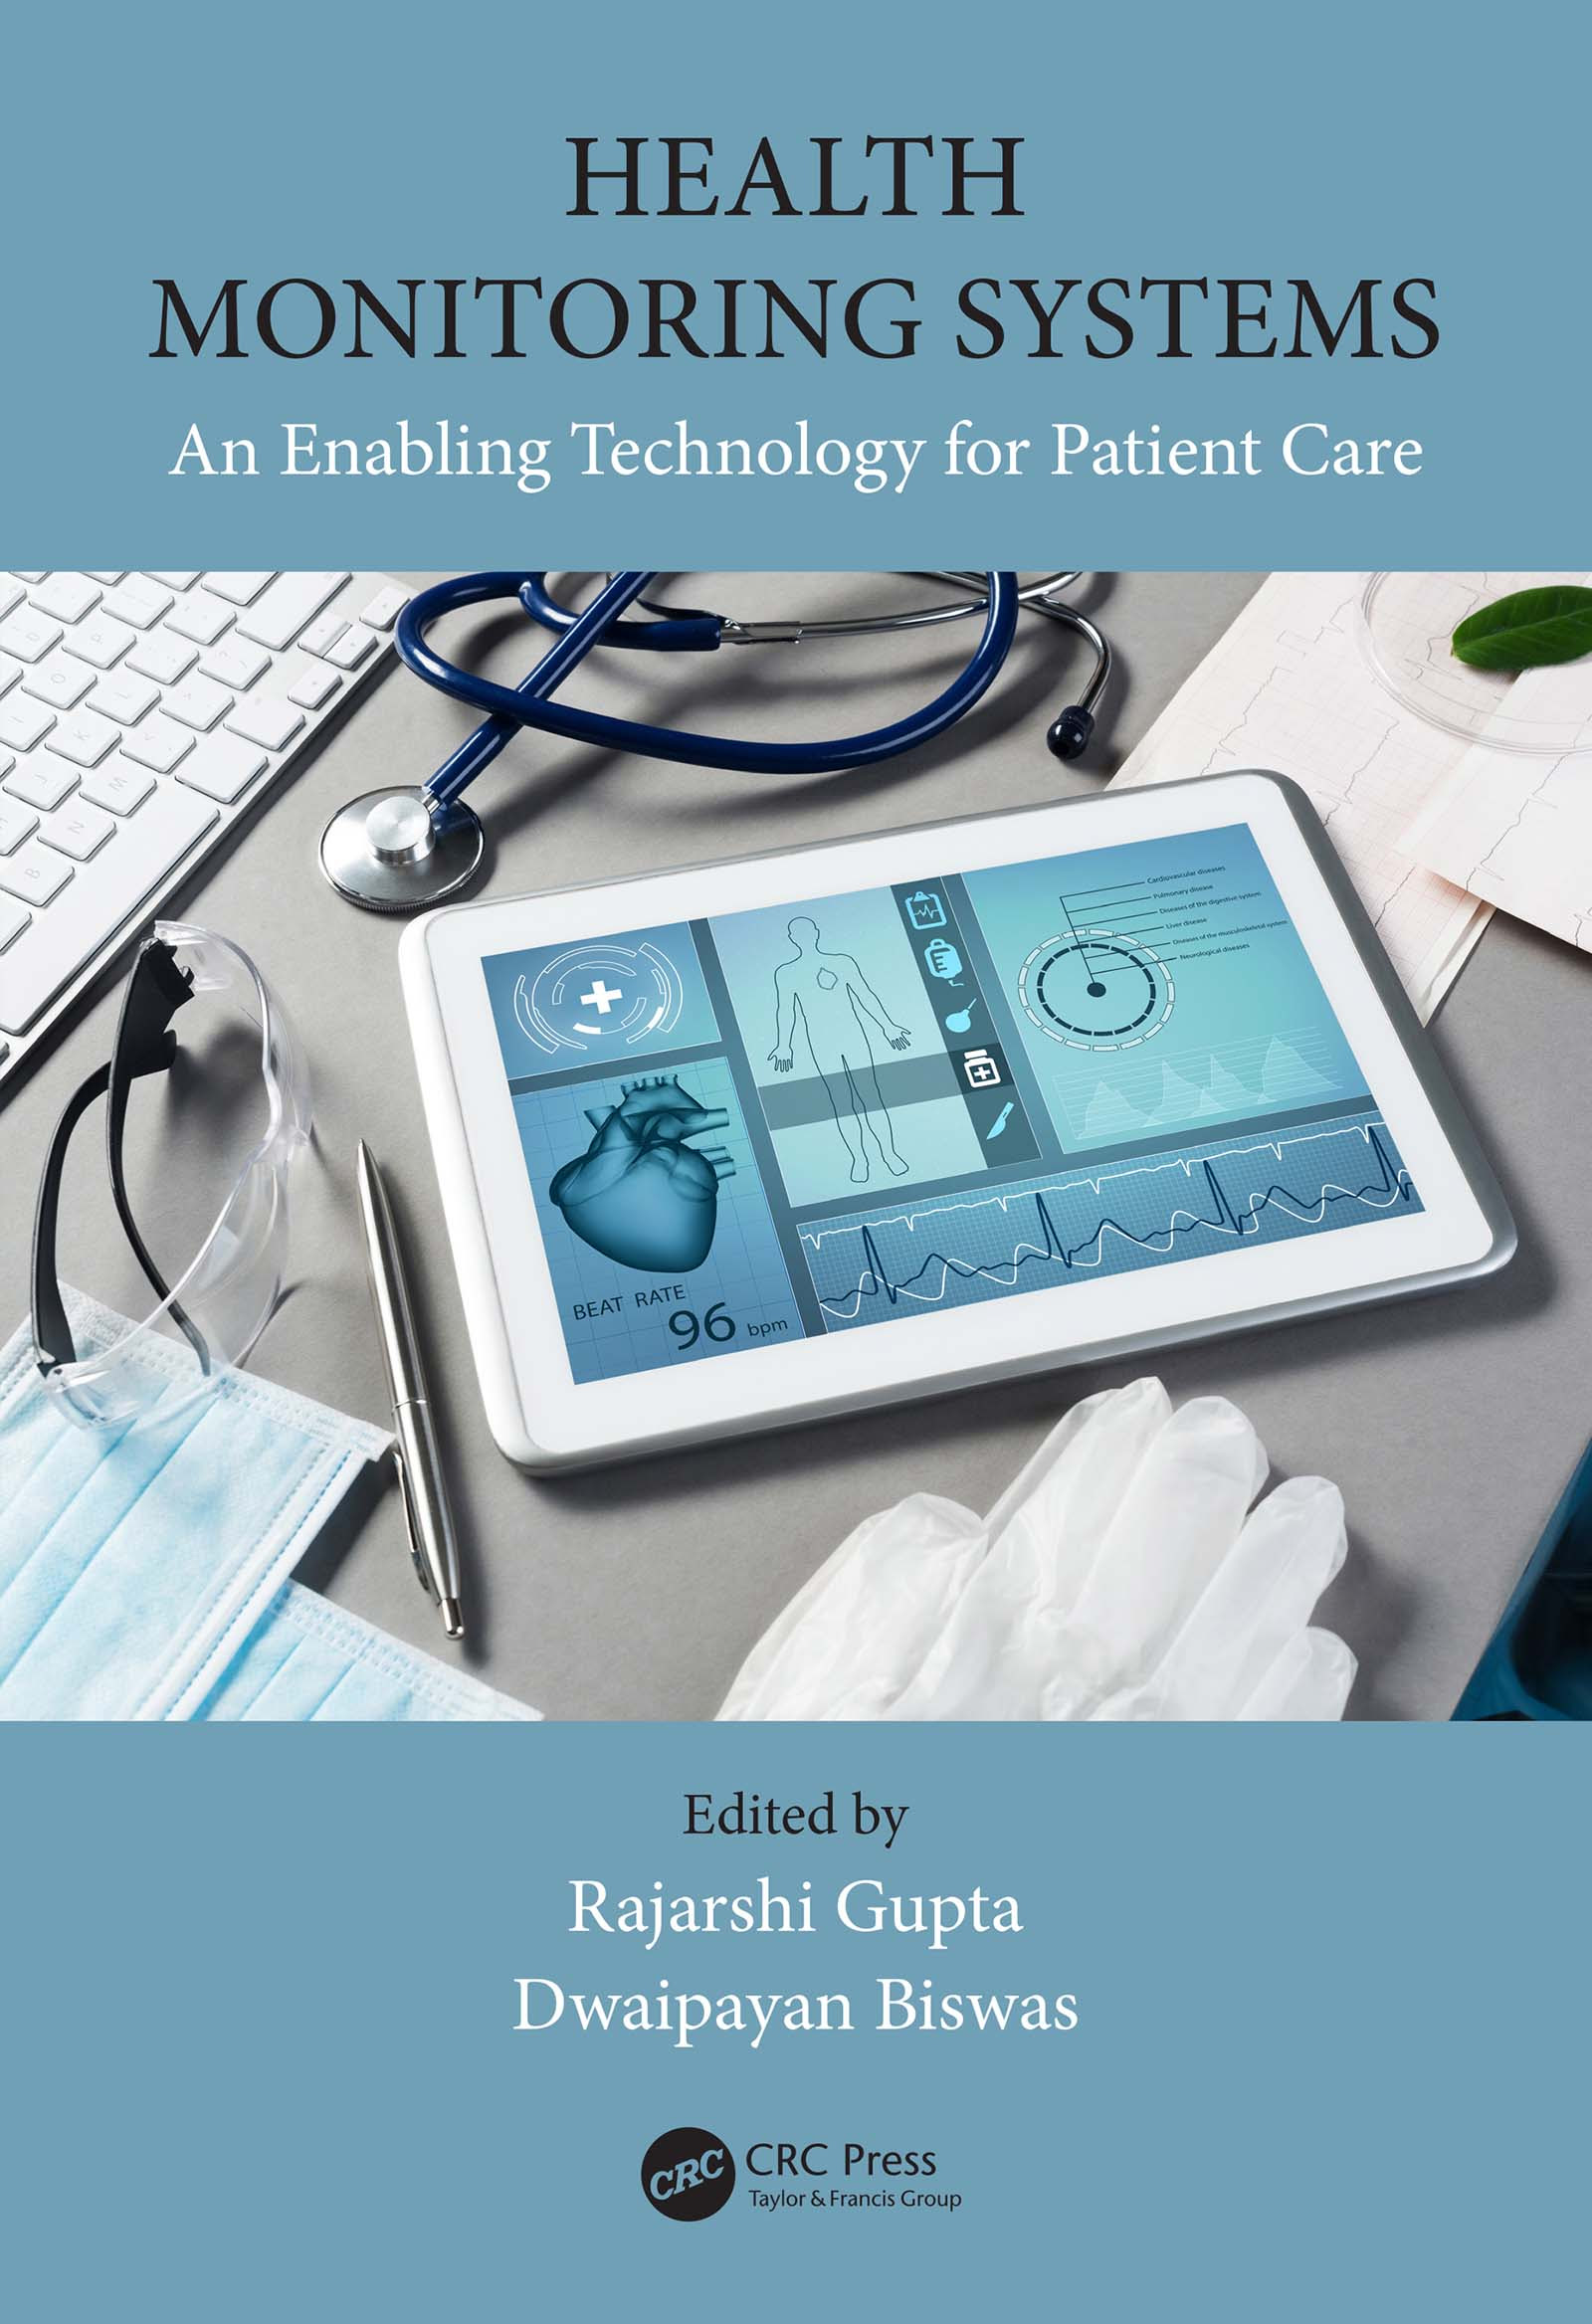 Health Monitoring Systems | An Enabling Technology for ...